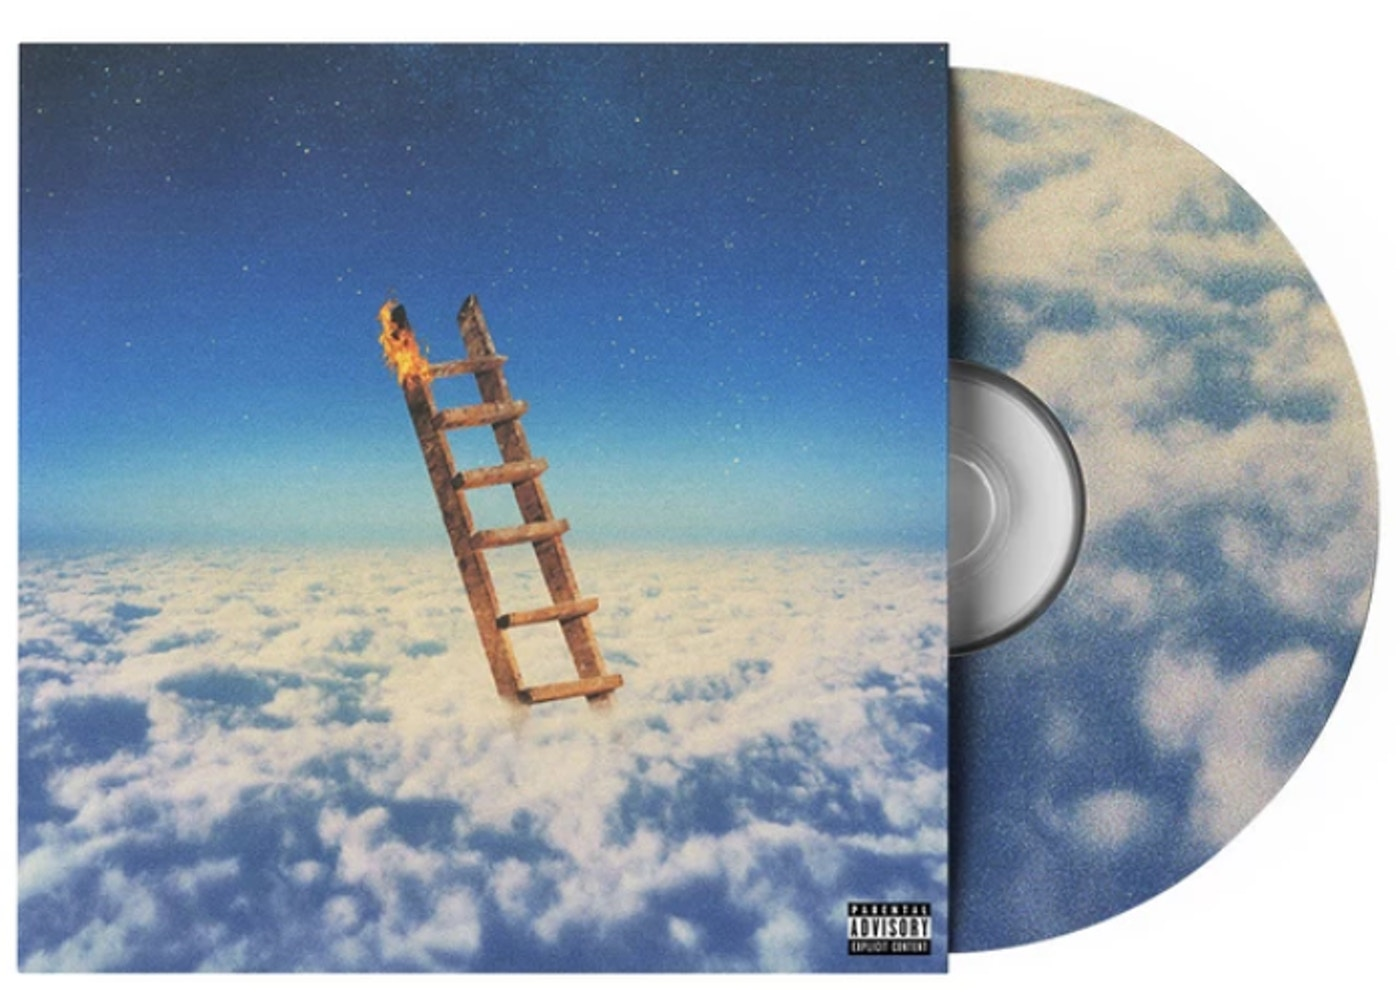 Travis Scott Highest In The Room Cover I Cd Multi The visuals for it was published the same day. travis scott highest in the room cover i cd multi